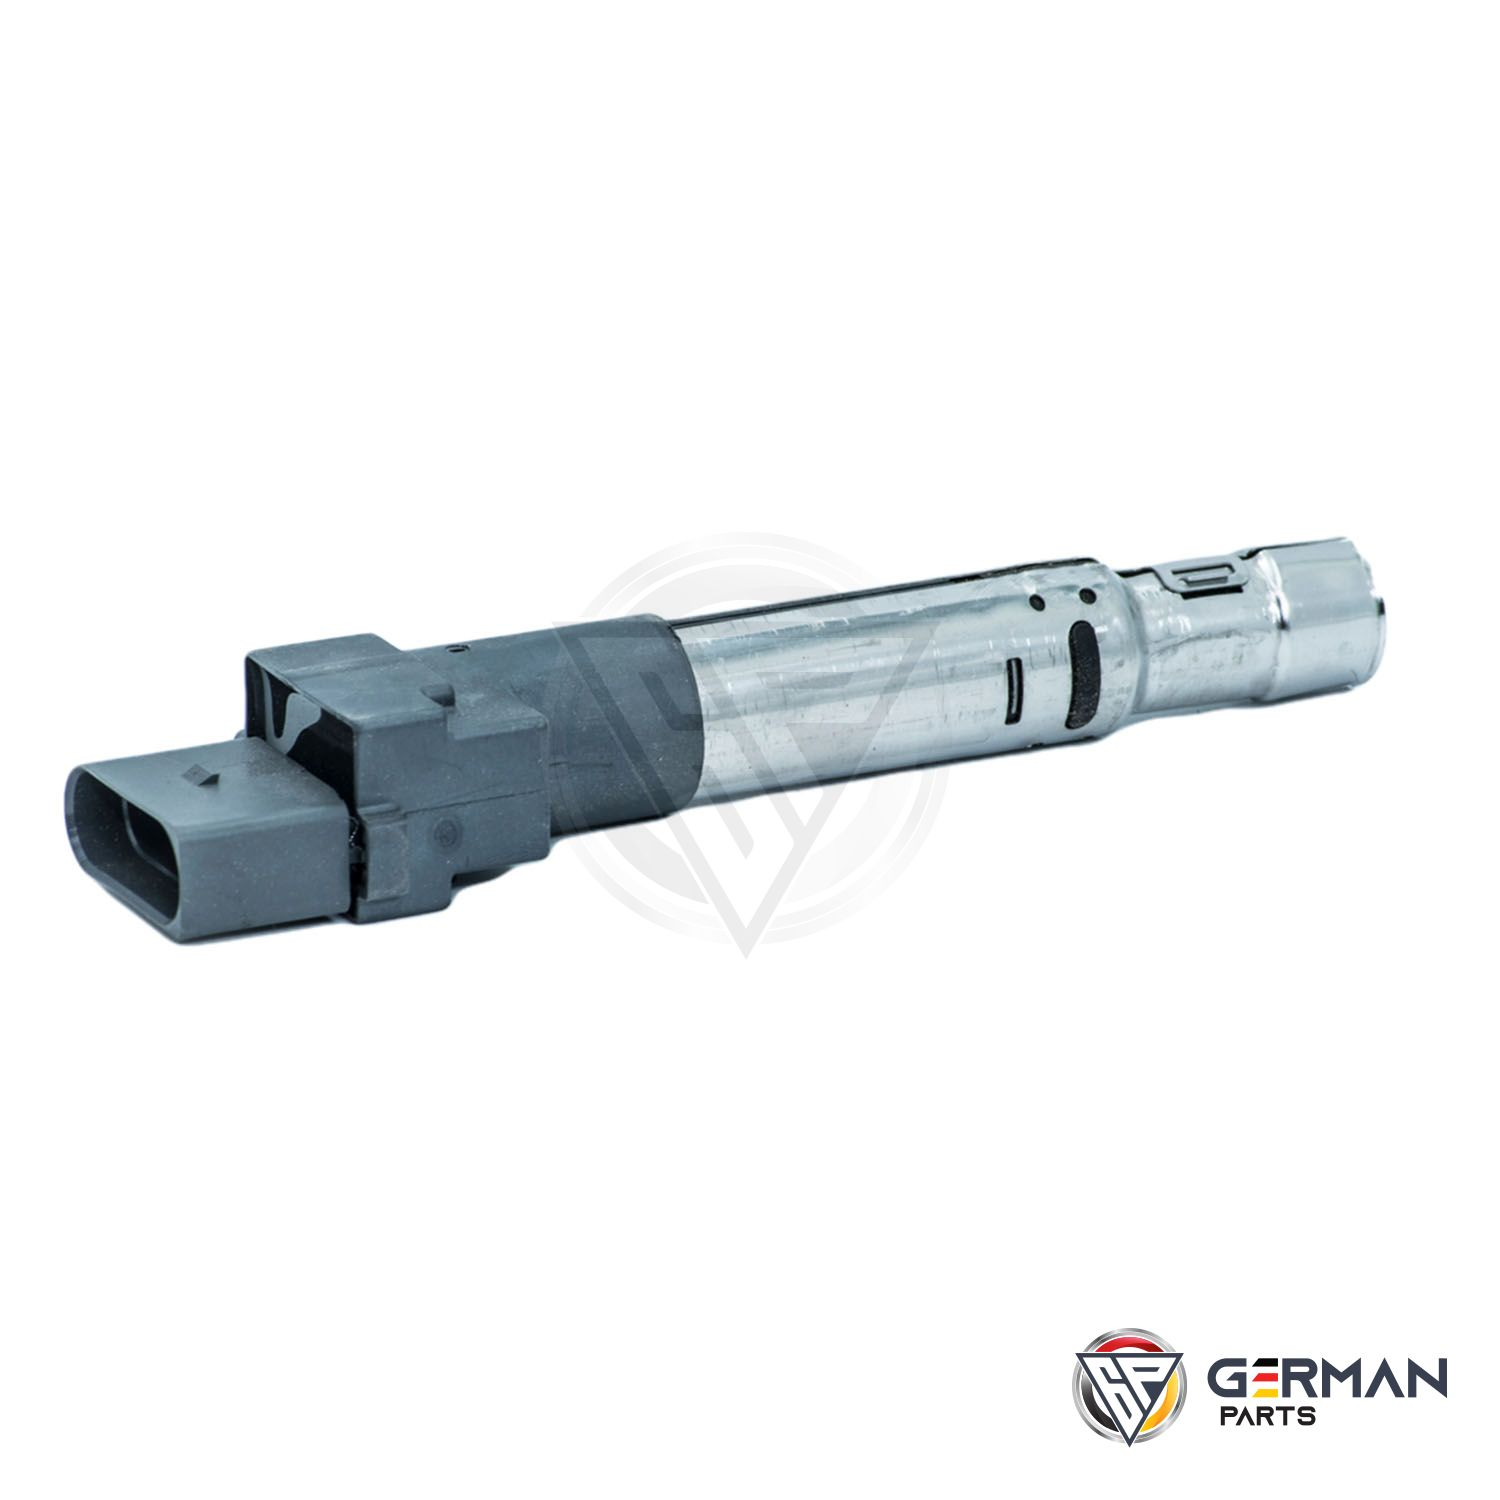 Buy Genuine Audi/Volkswagen Ignition Coil 022905715B - German Parts